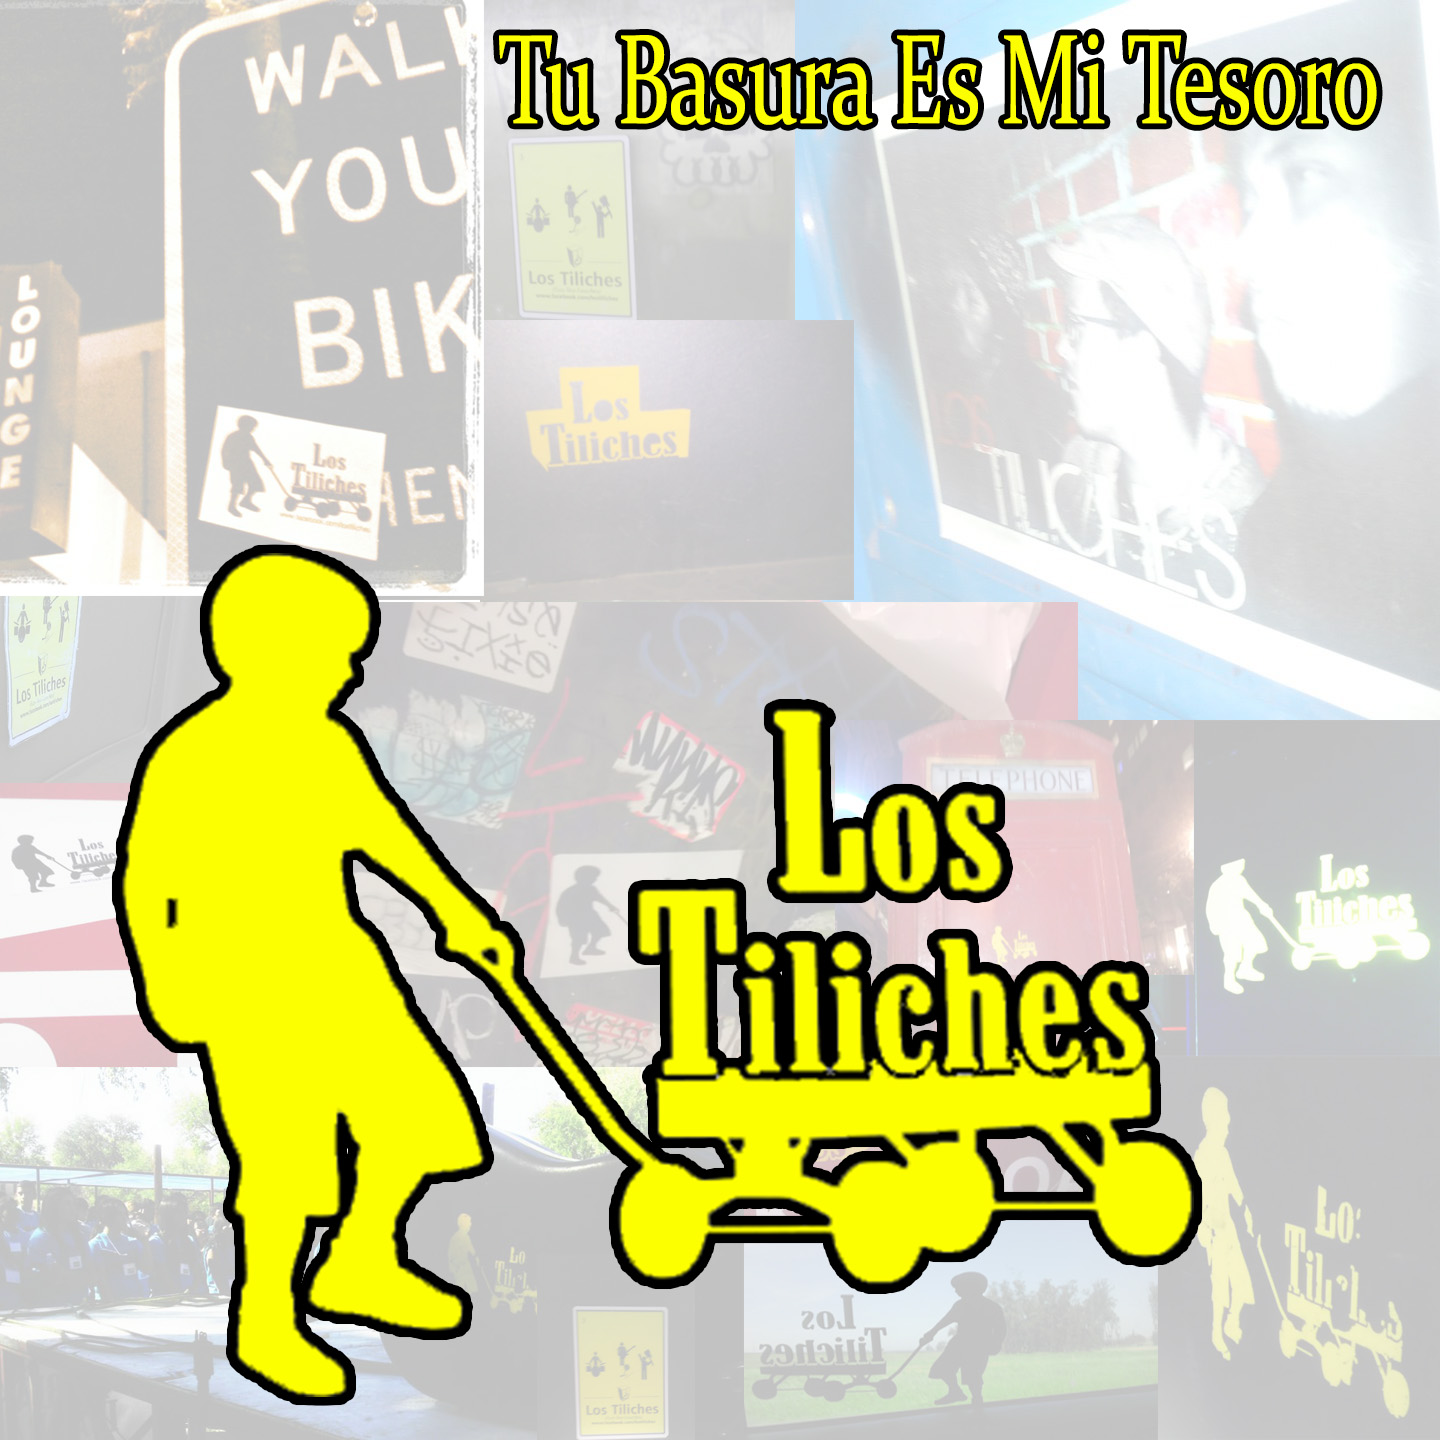 Los Tiliches – Tú Basura Es Mi Tesoro (Sessiontape.com Download)